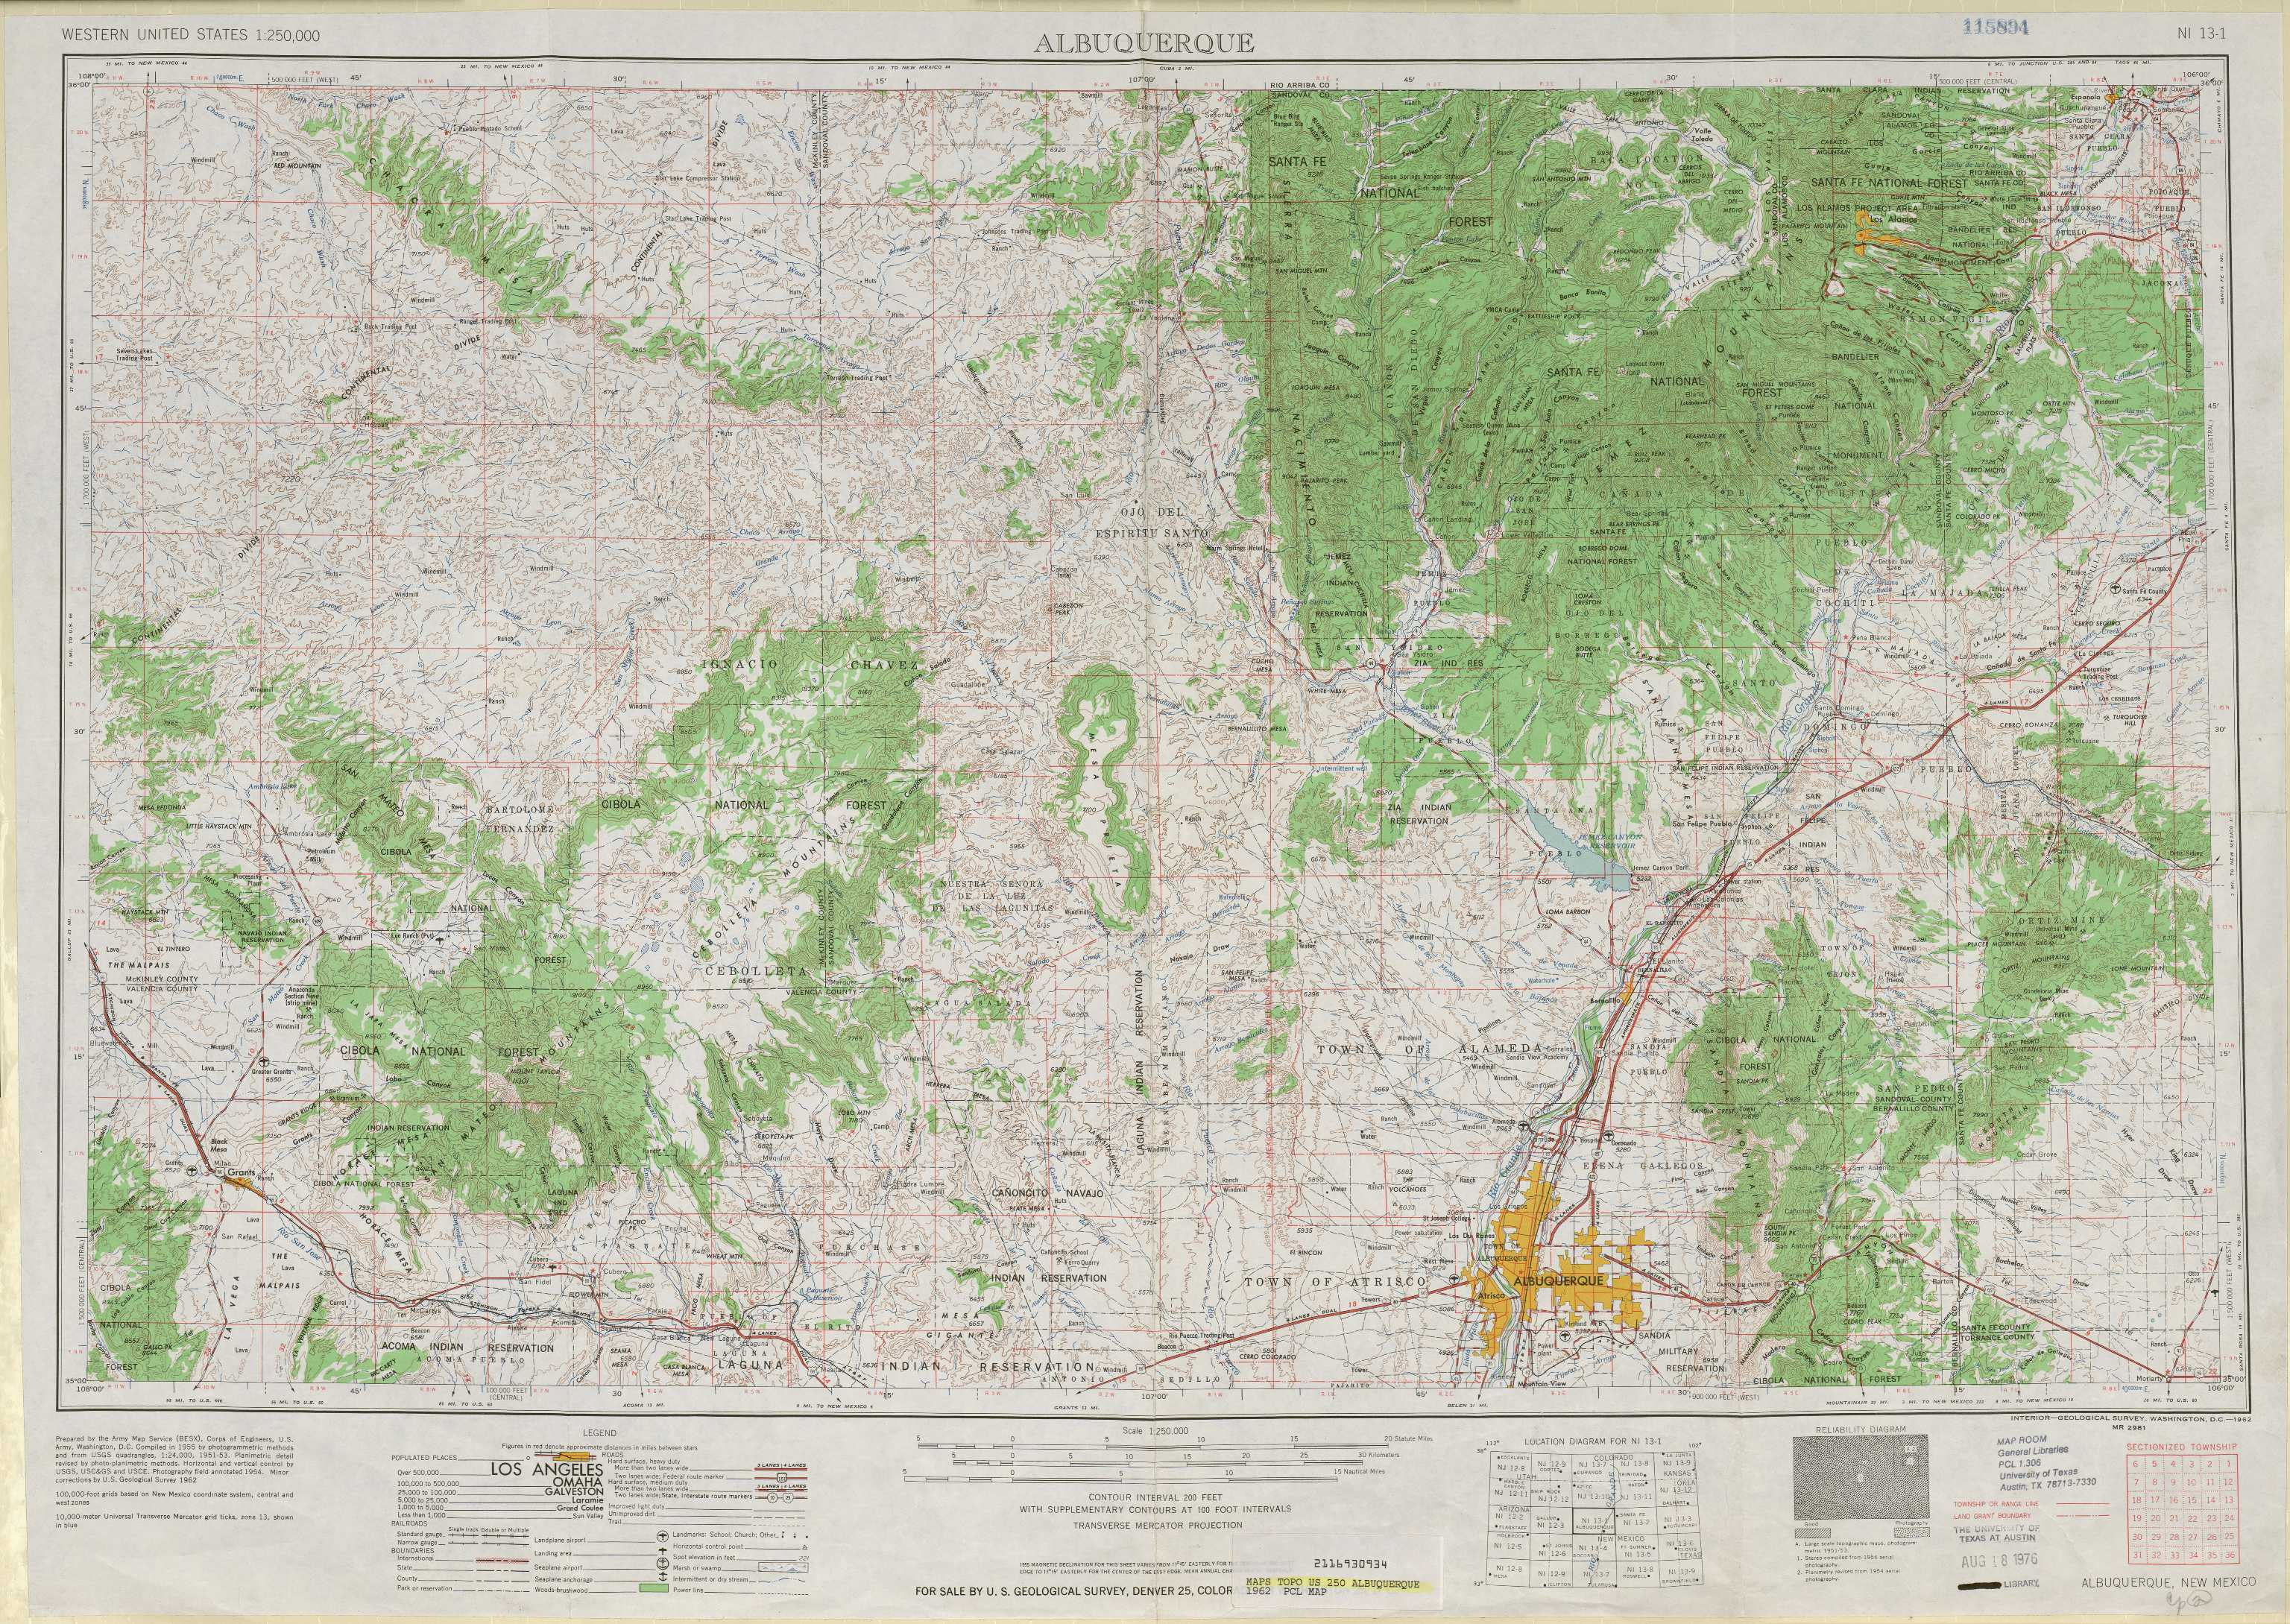 Albuquerque topographic maps, NM - USGS Topo Quad 35106a1 at 1 ...